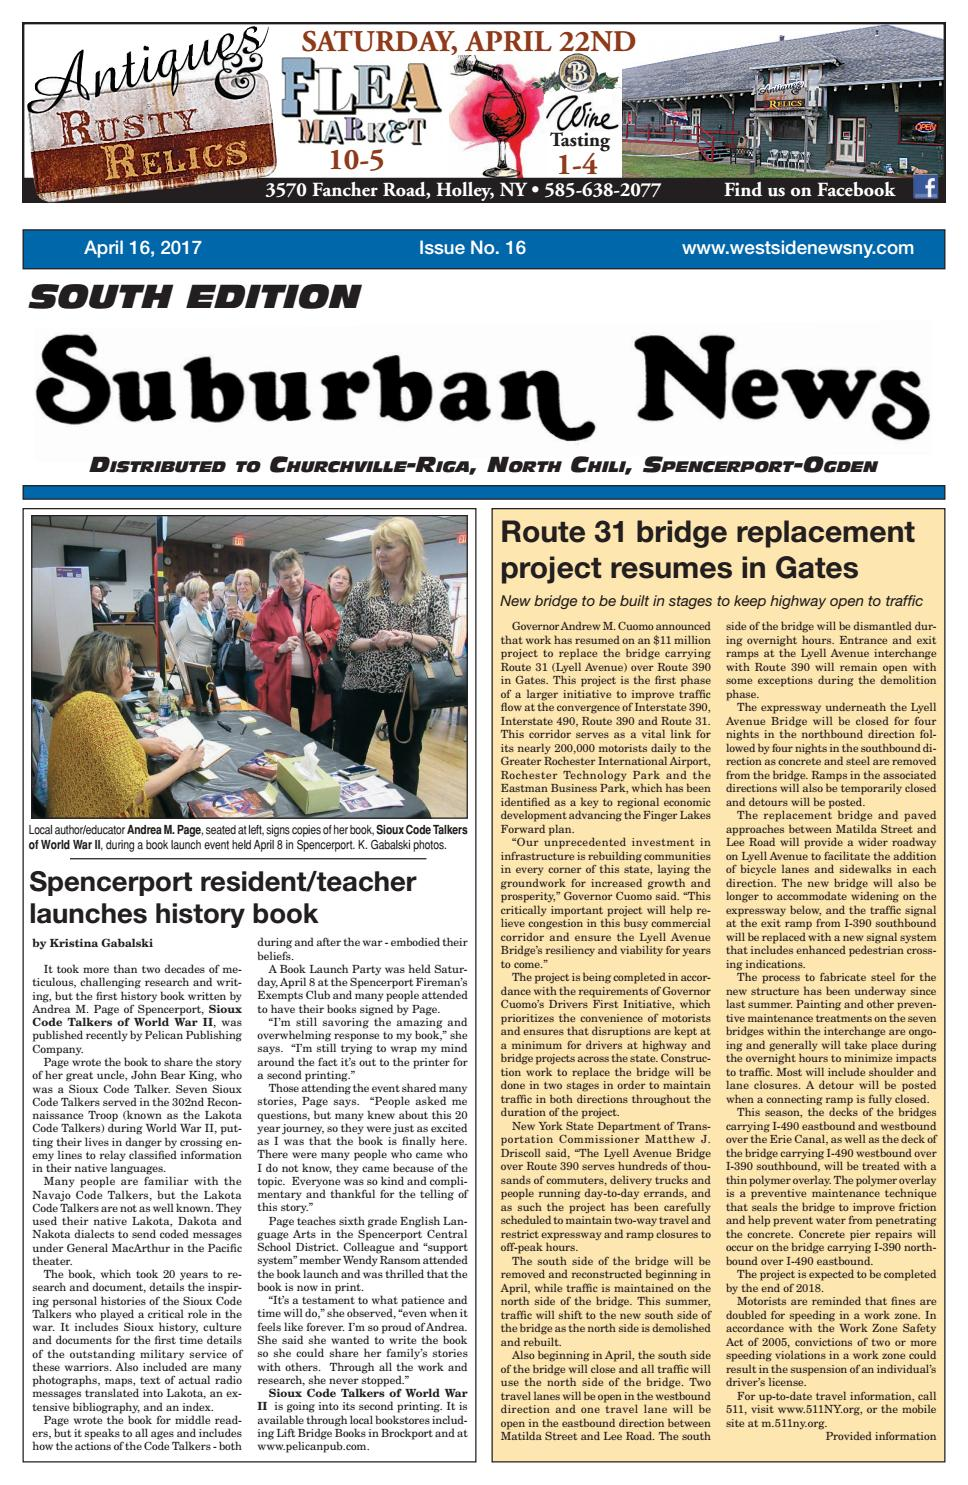 Suburban news south edition april 16 2017 by westside news inc suburban news south edition april 16 2017 by westside news inc issuu fandeluxe Images